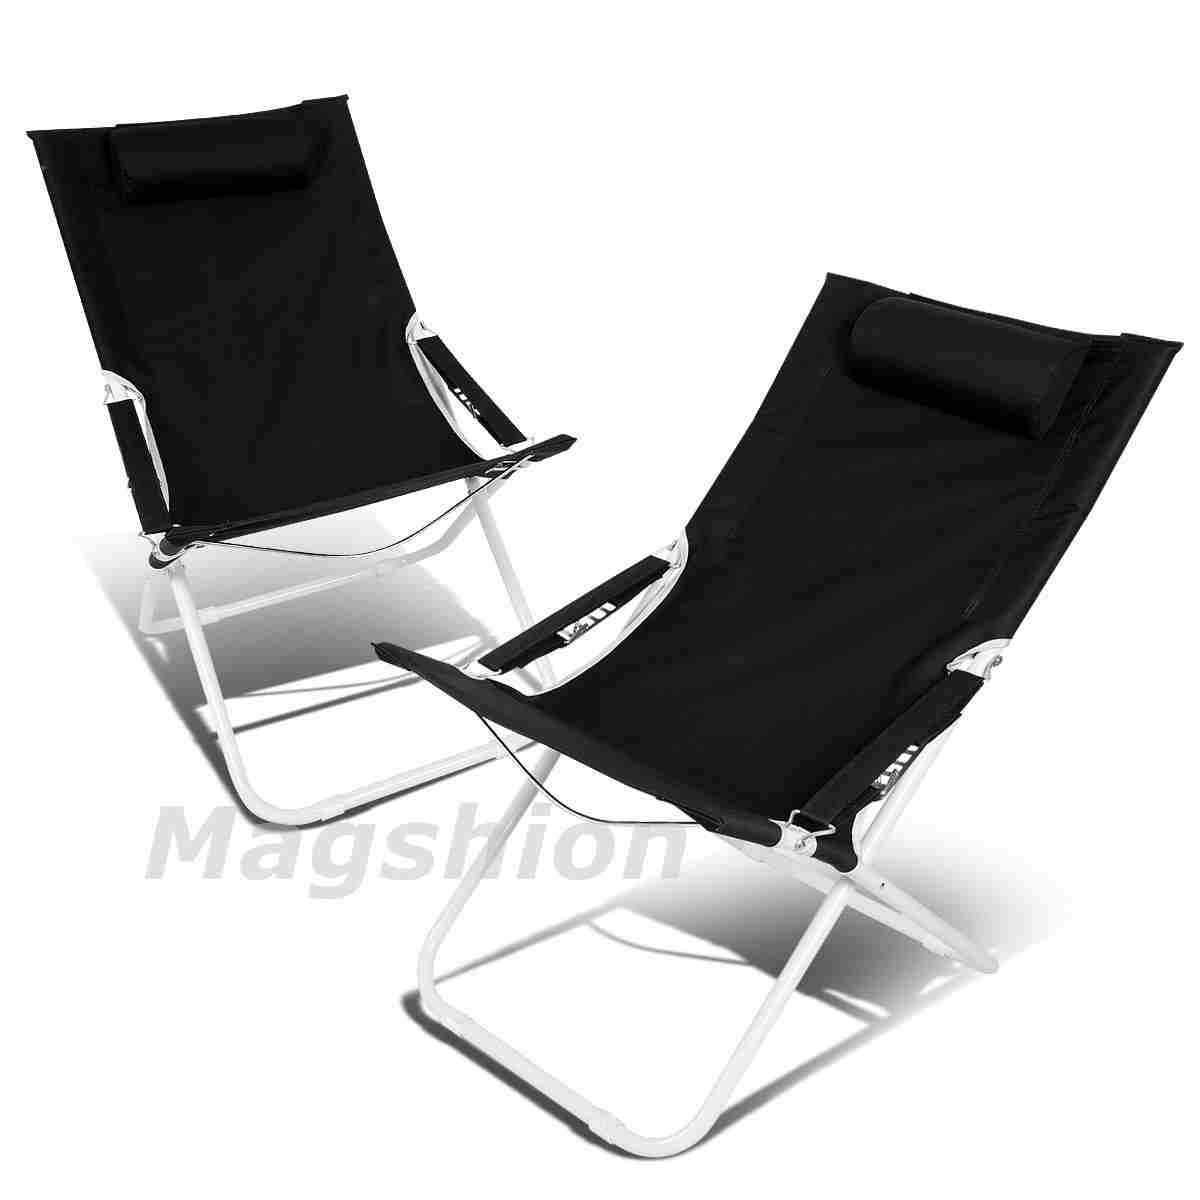 fold up reclining lawn chairs swivel chair auckland maccabee camping